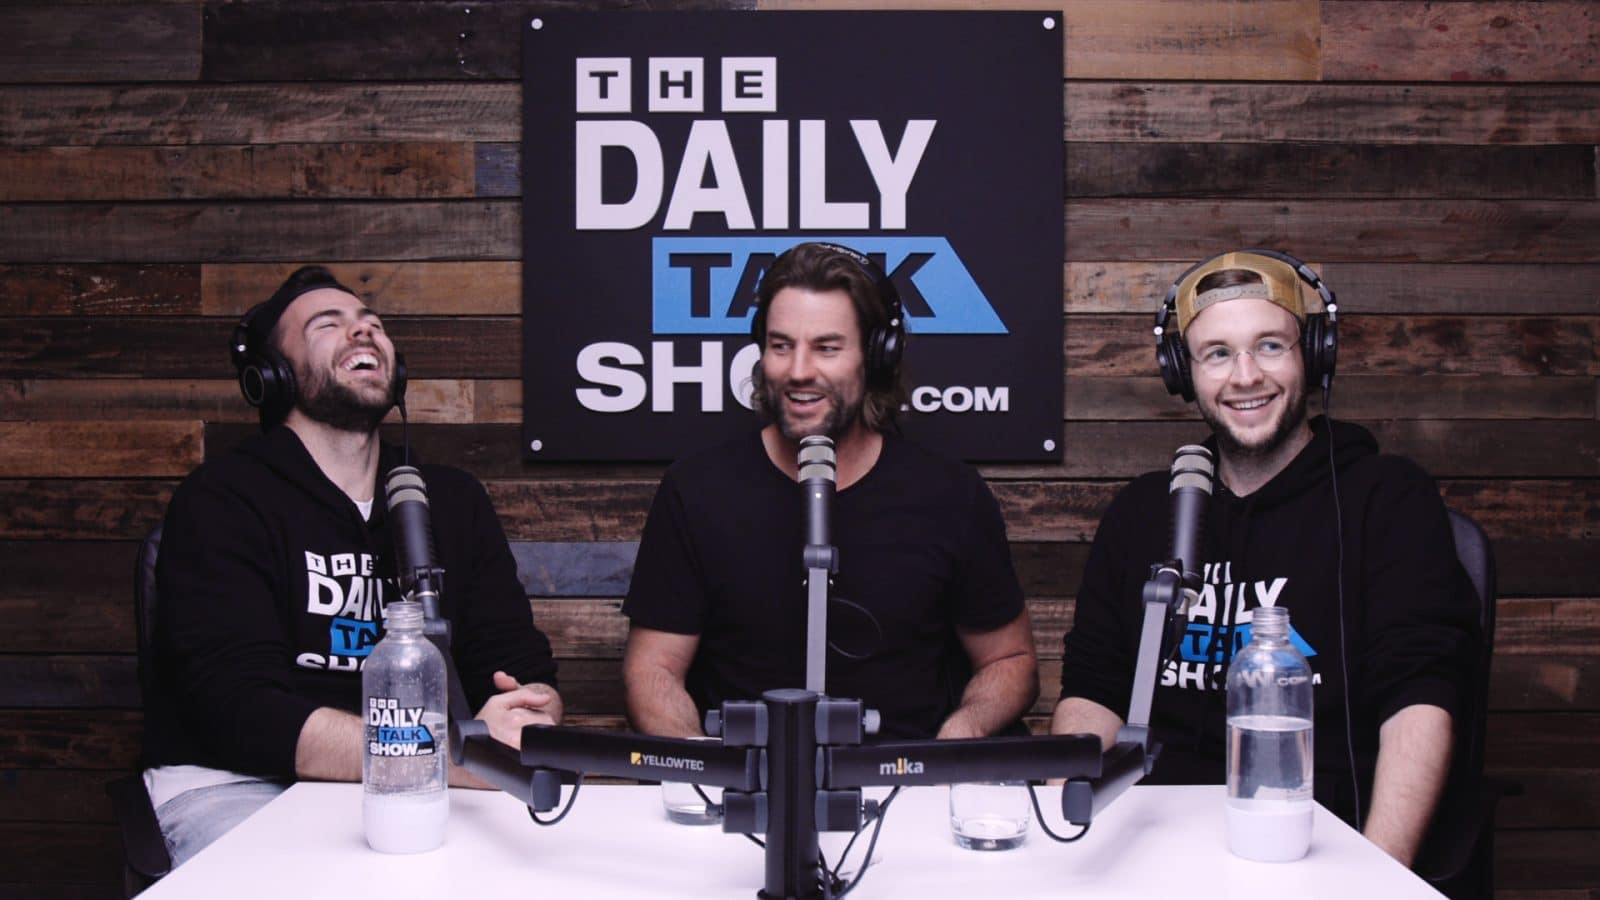 The-Daily-Talk-Show-483